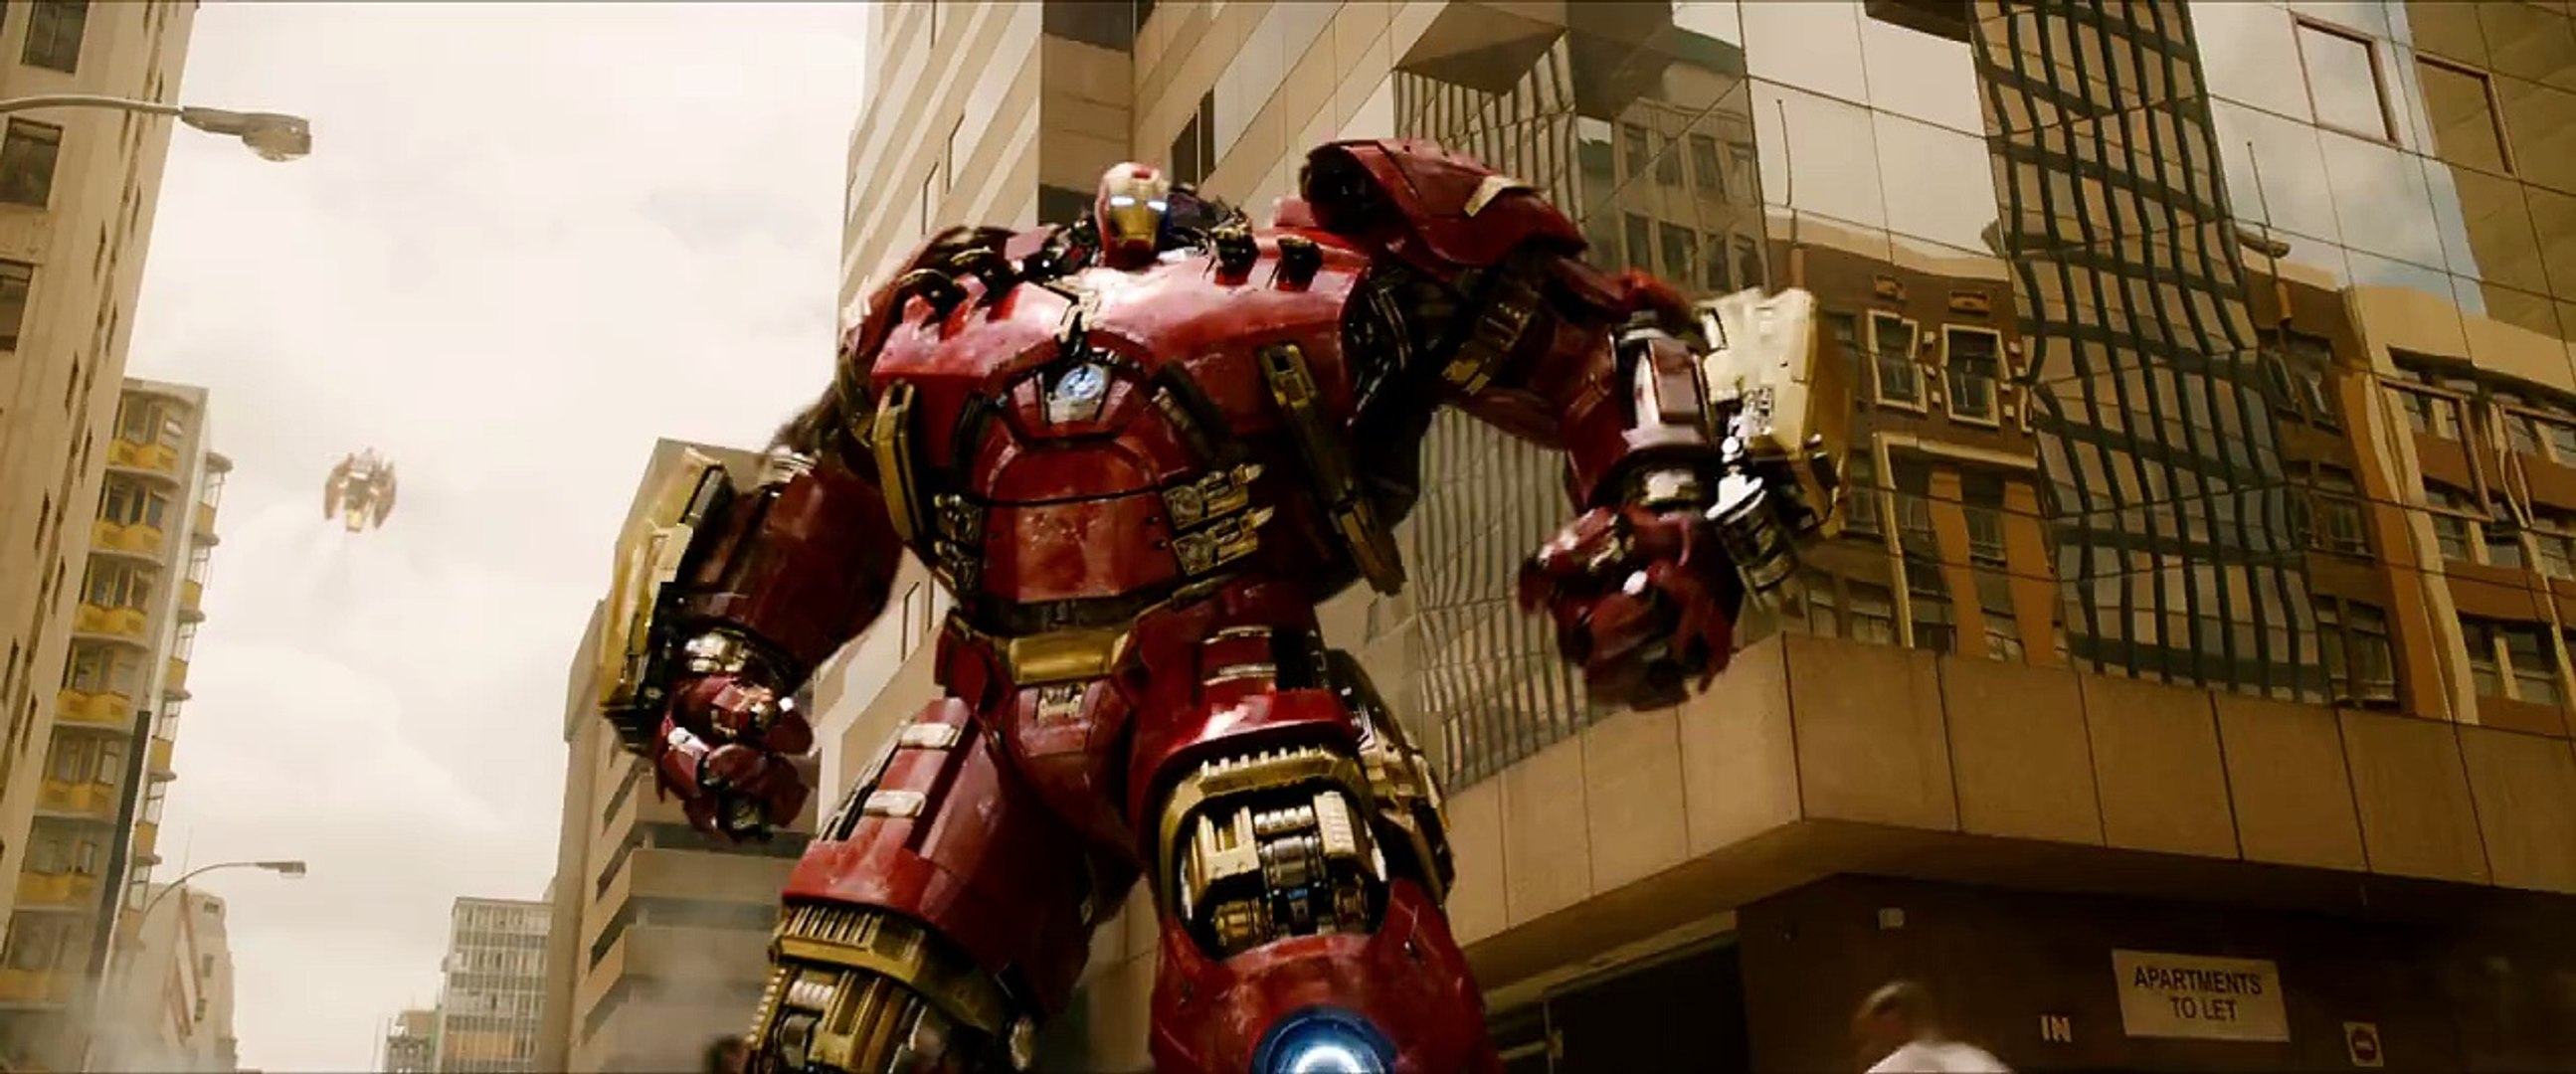 Our AVENGERS team is the 1 seed. See Marvel's Avengers Age of Ultron, in theaters May 1 2015 |